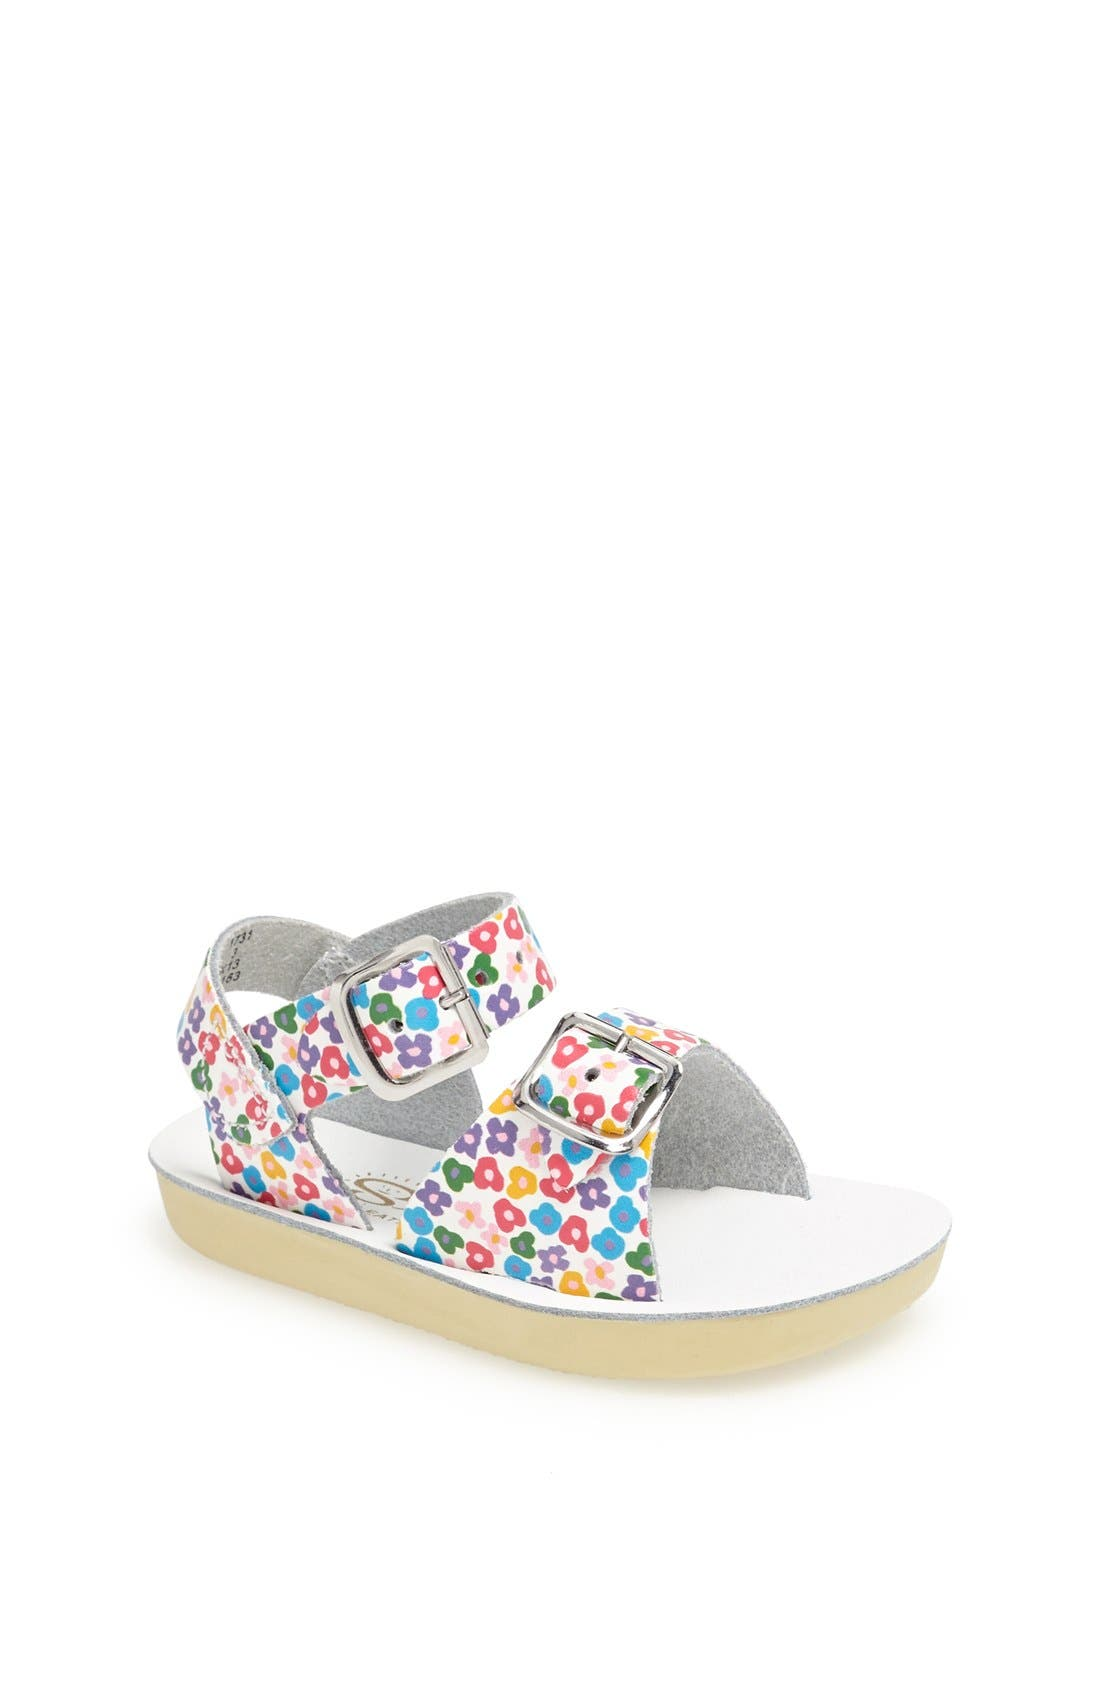 Hoy Shoe Salt-Water<sup>®</sup> Sandals 'Surfer' Sandal,                             Main thumbnail 1, color,                             Floral